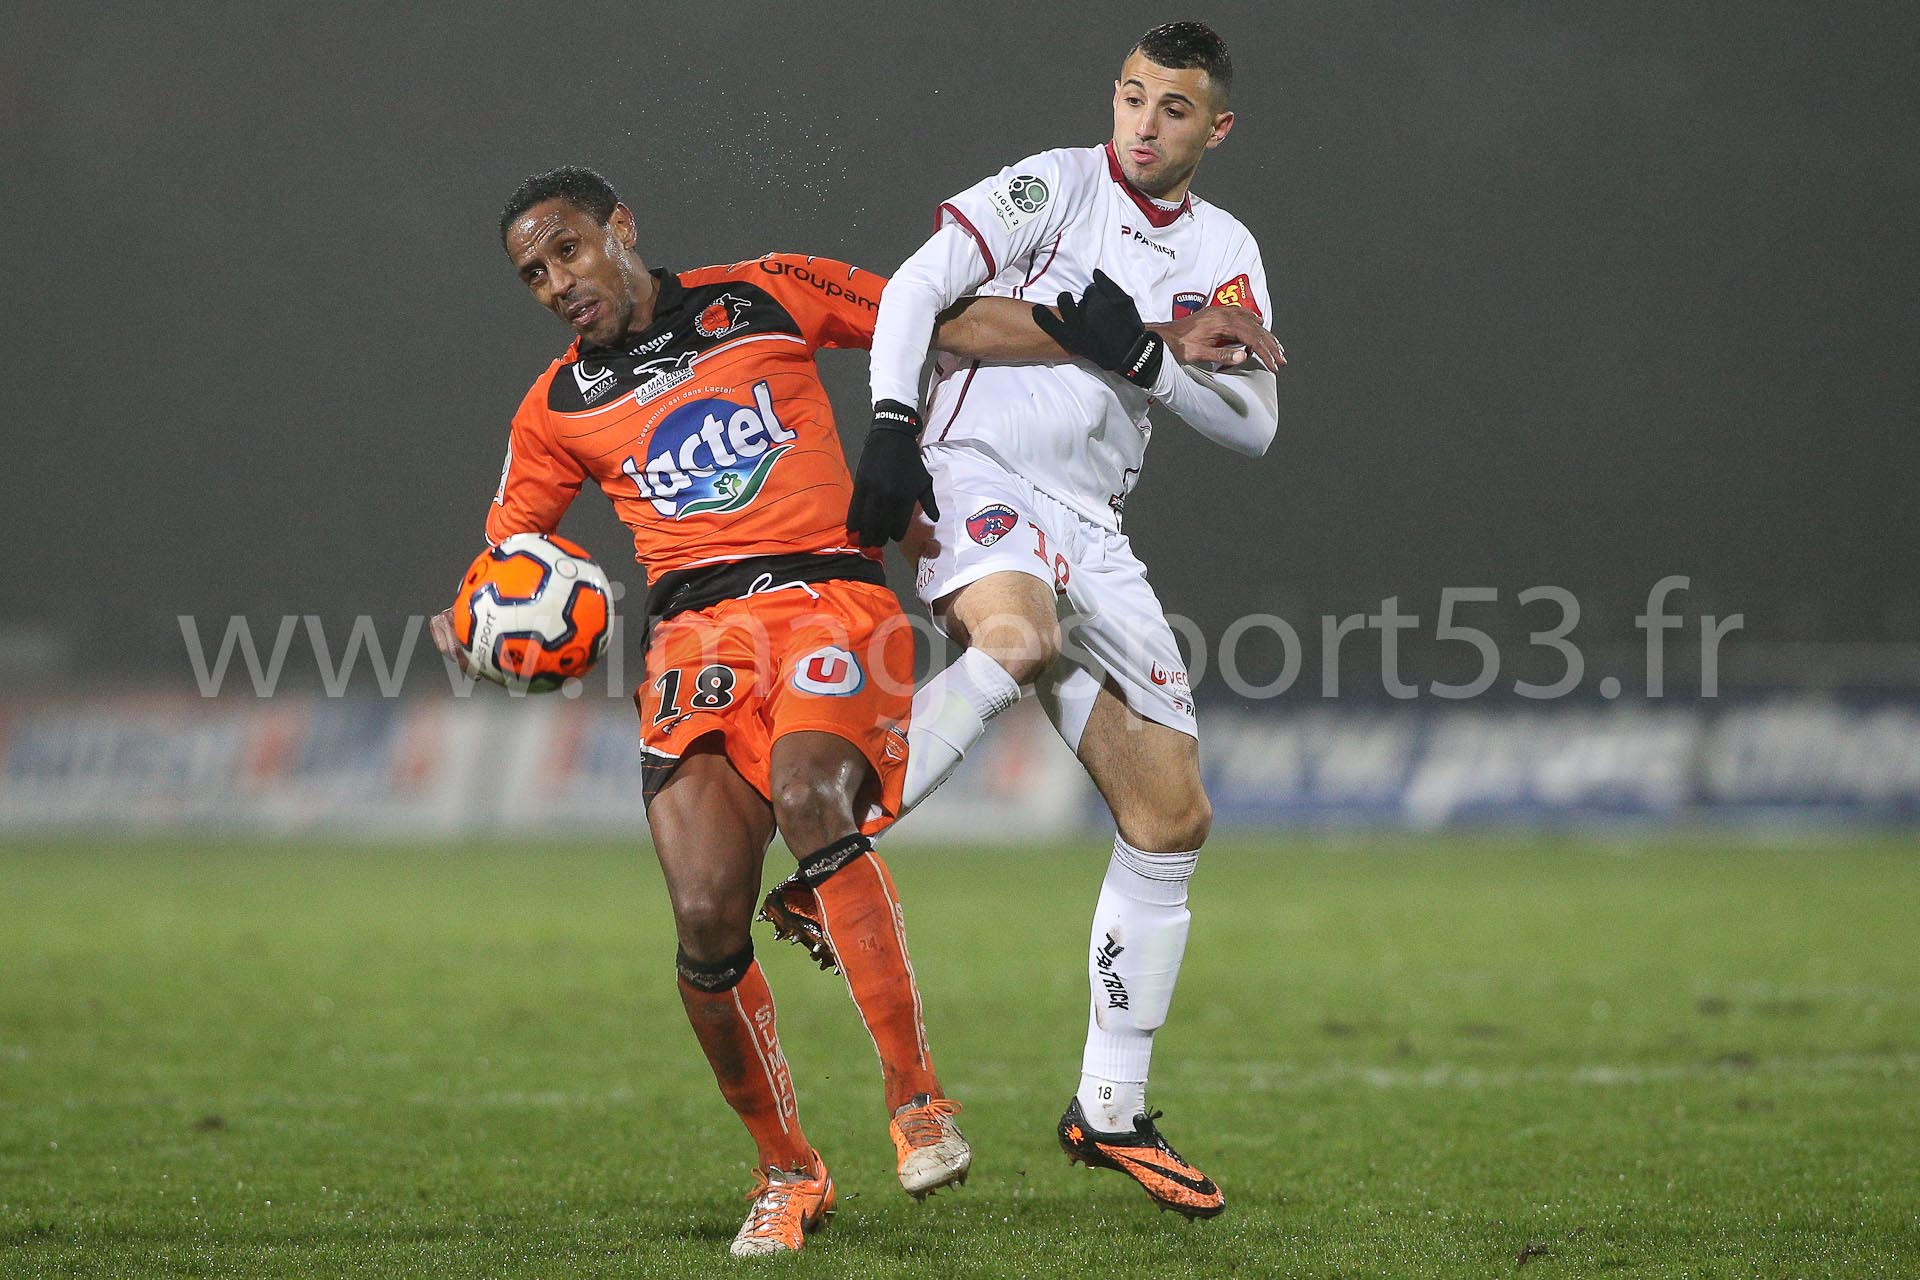 NG-Ligue2-1314-J21-Laval-Clermont_12